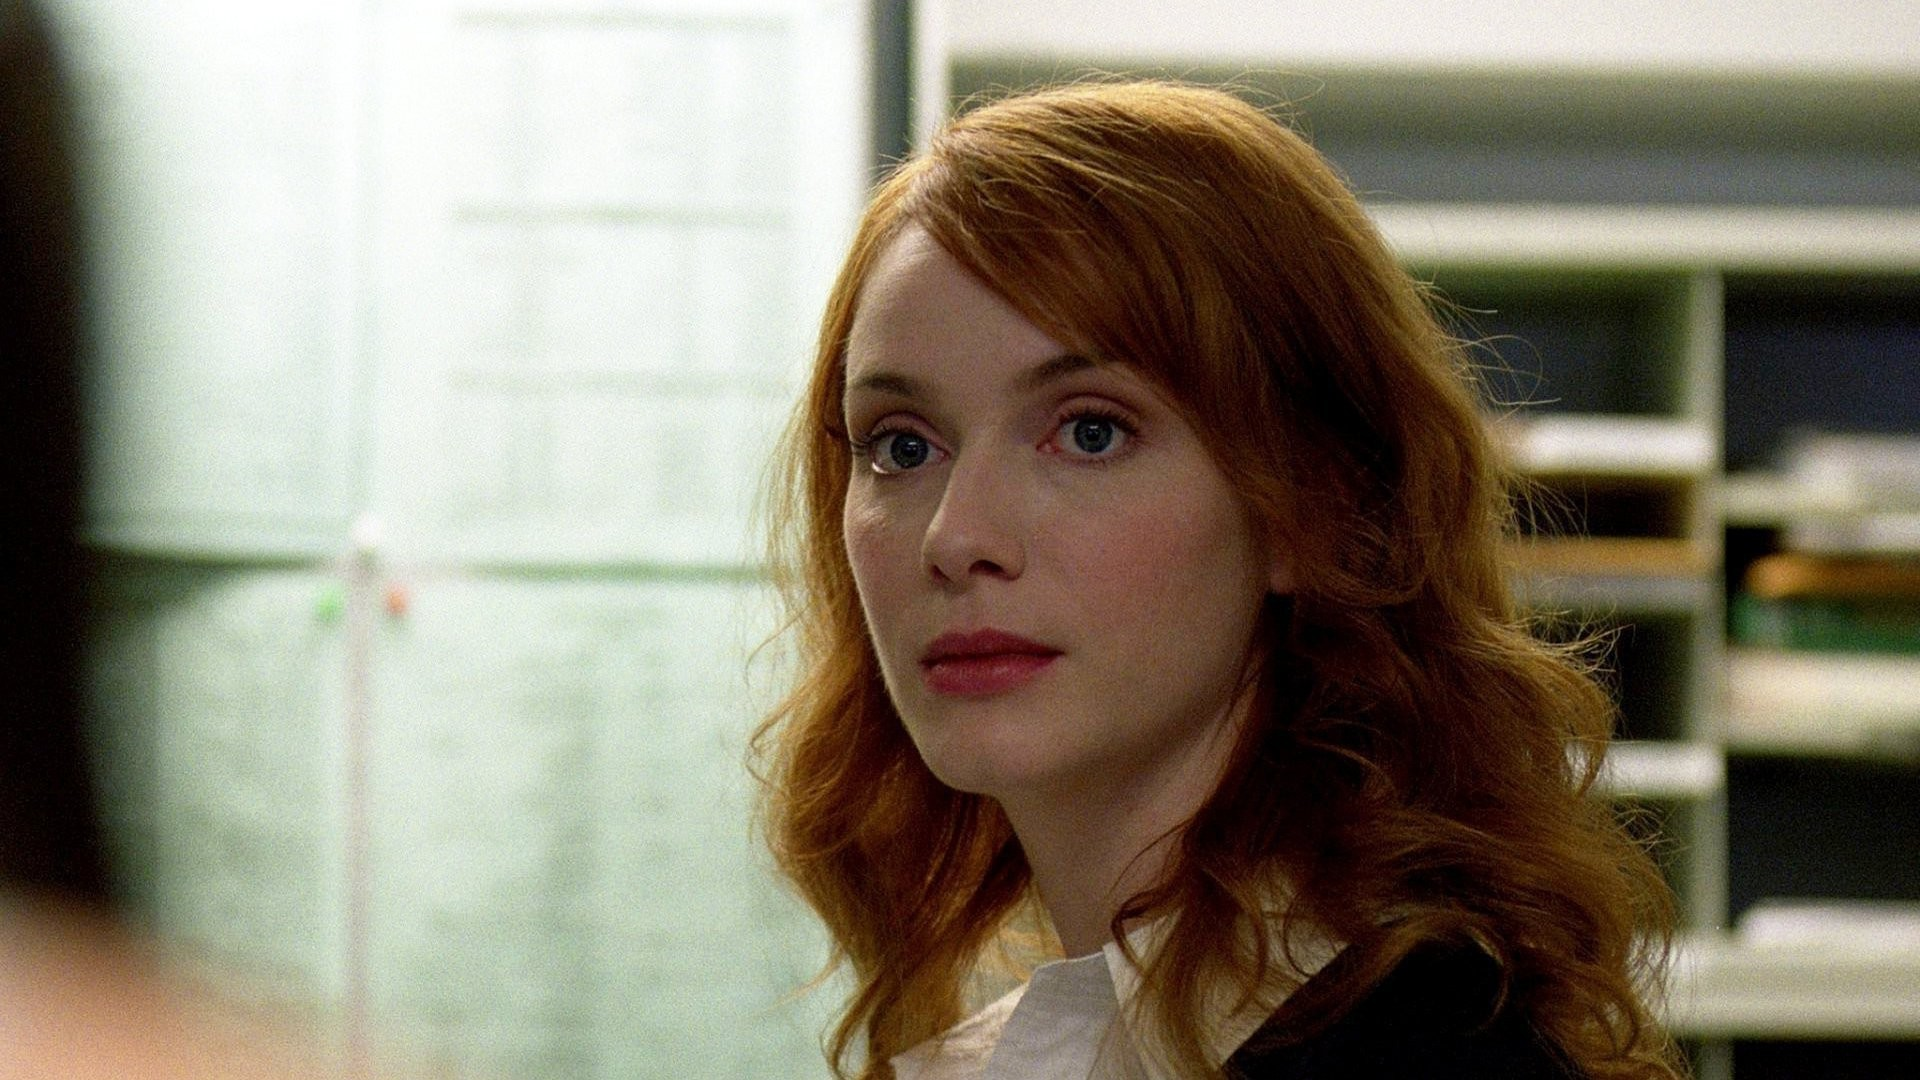 Christina Hendricks Computer Wallpaper